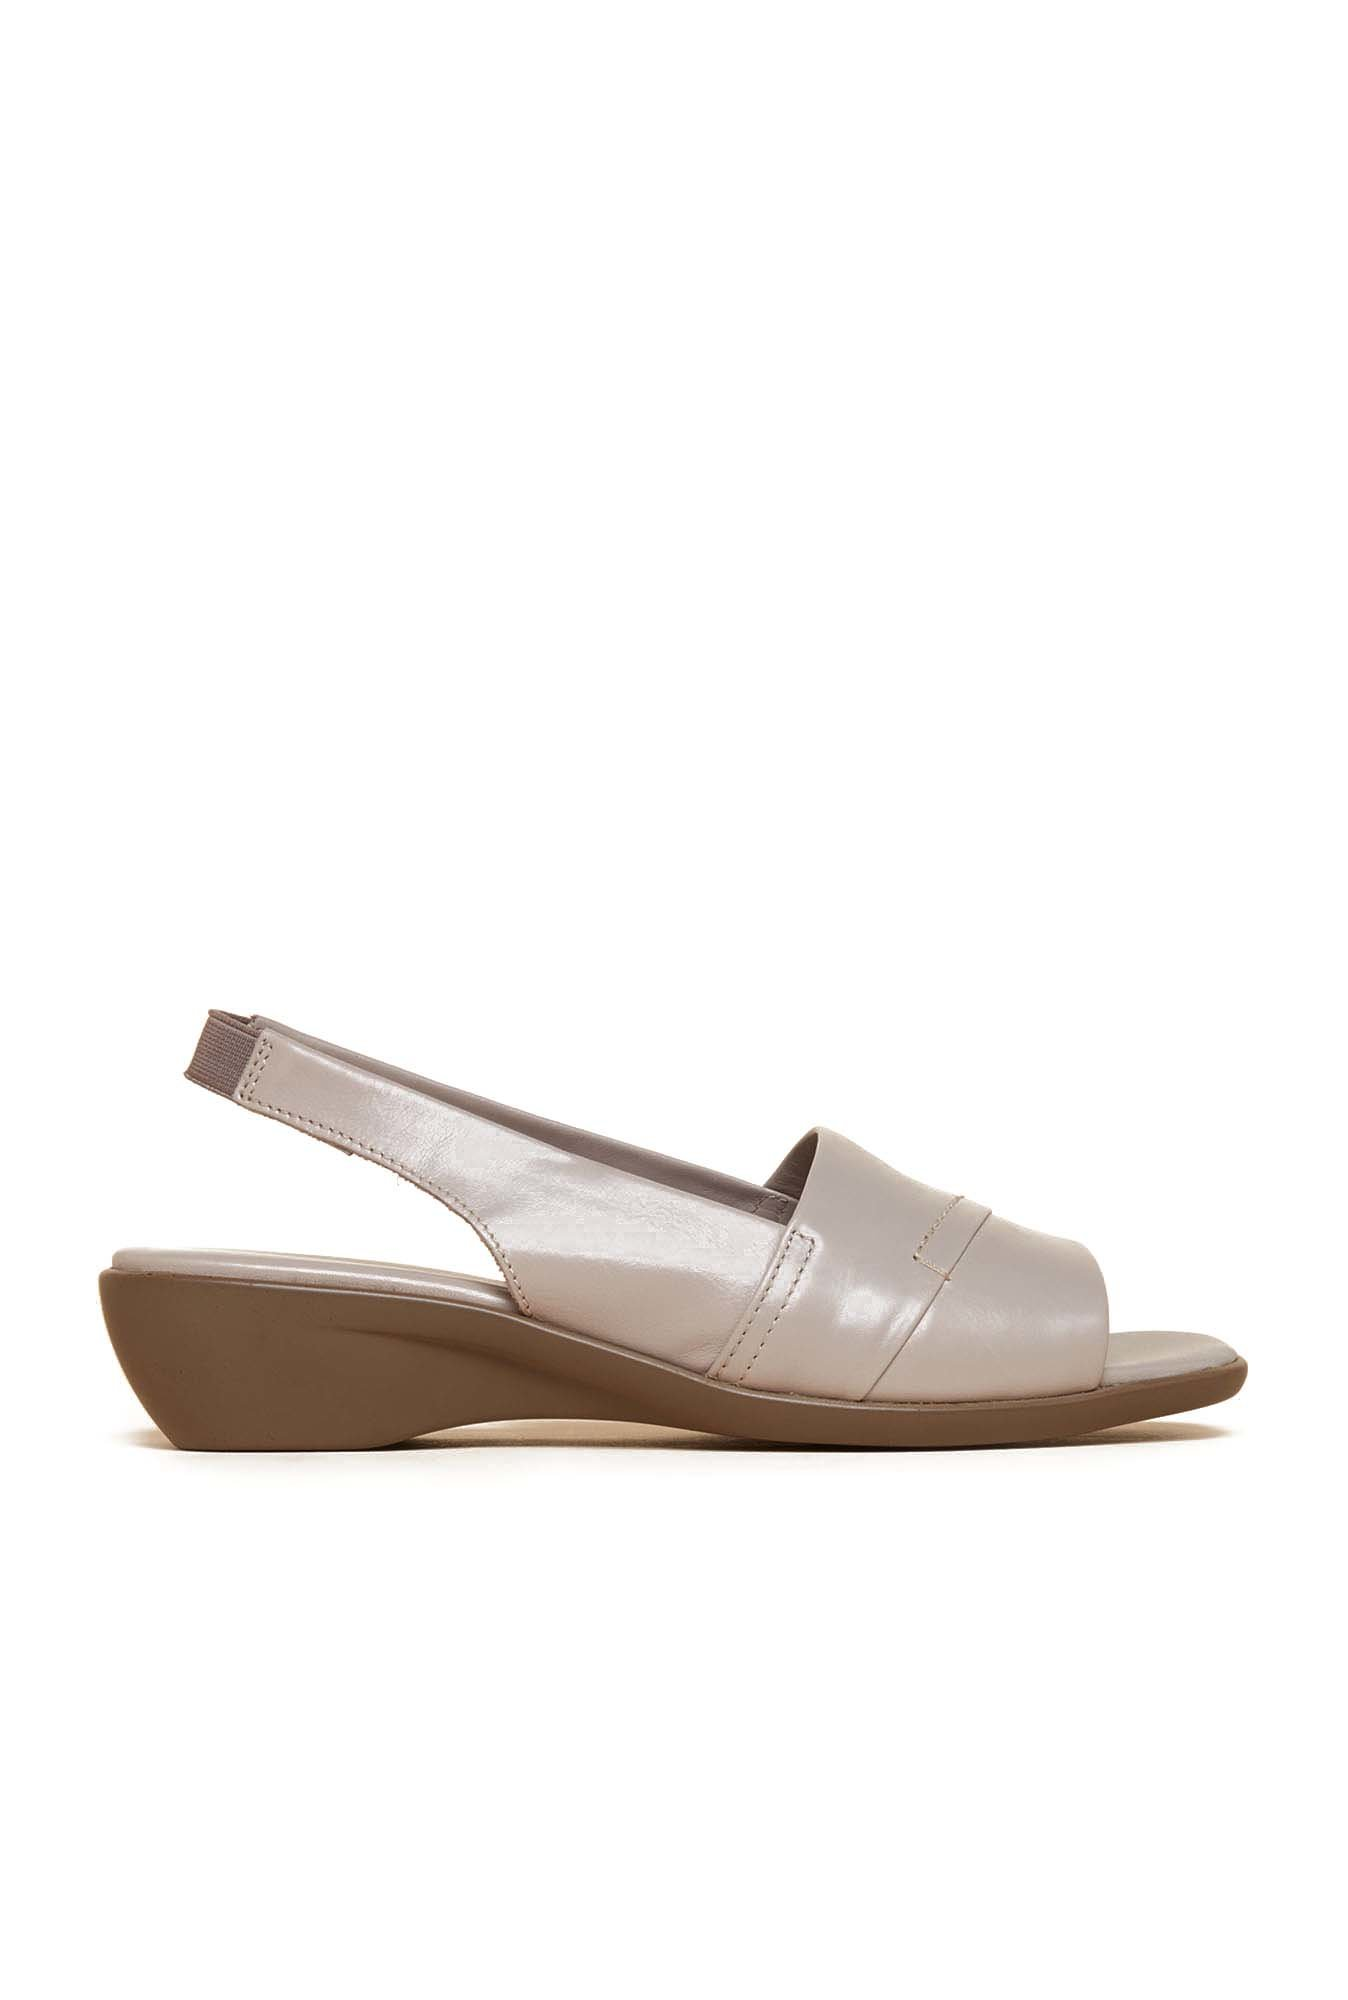 Aerosoles Beige Back Strap Leather Sandals